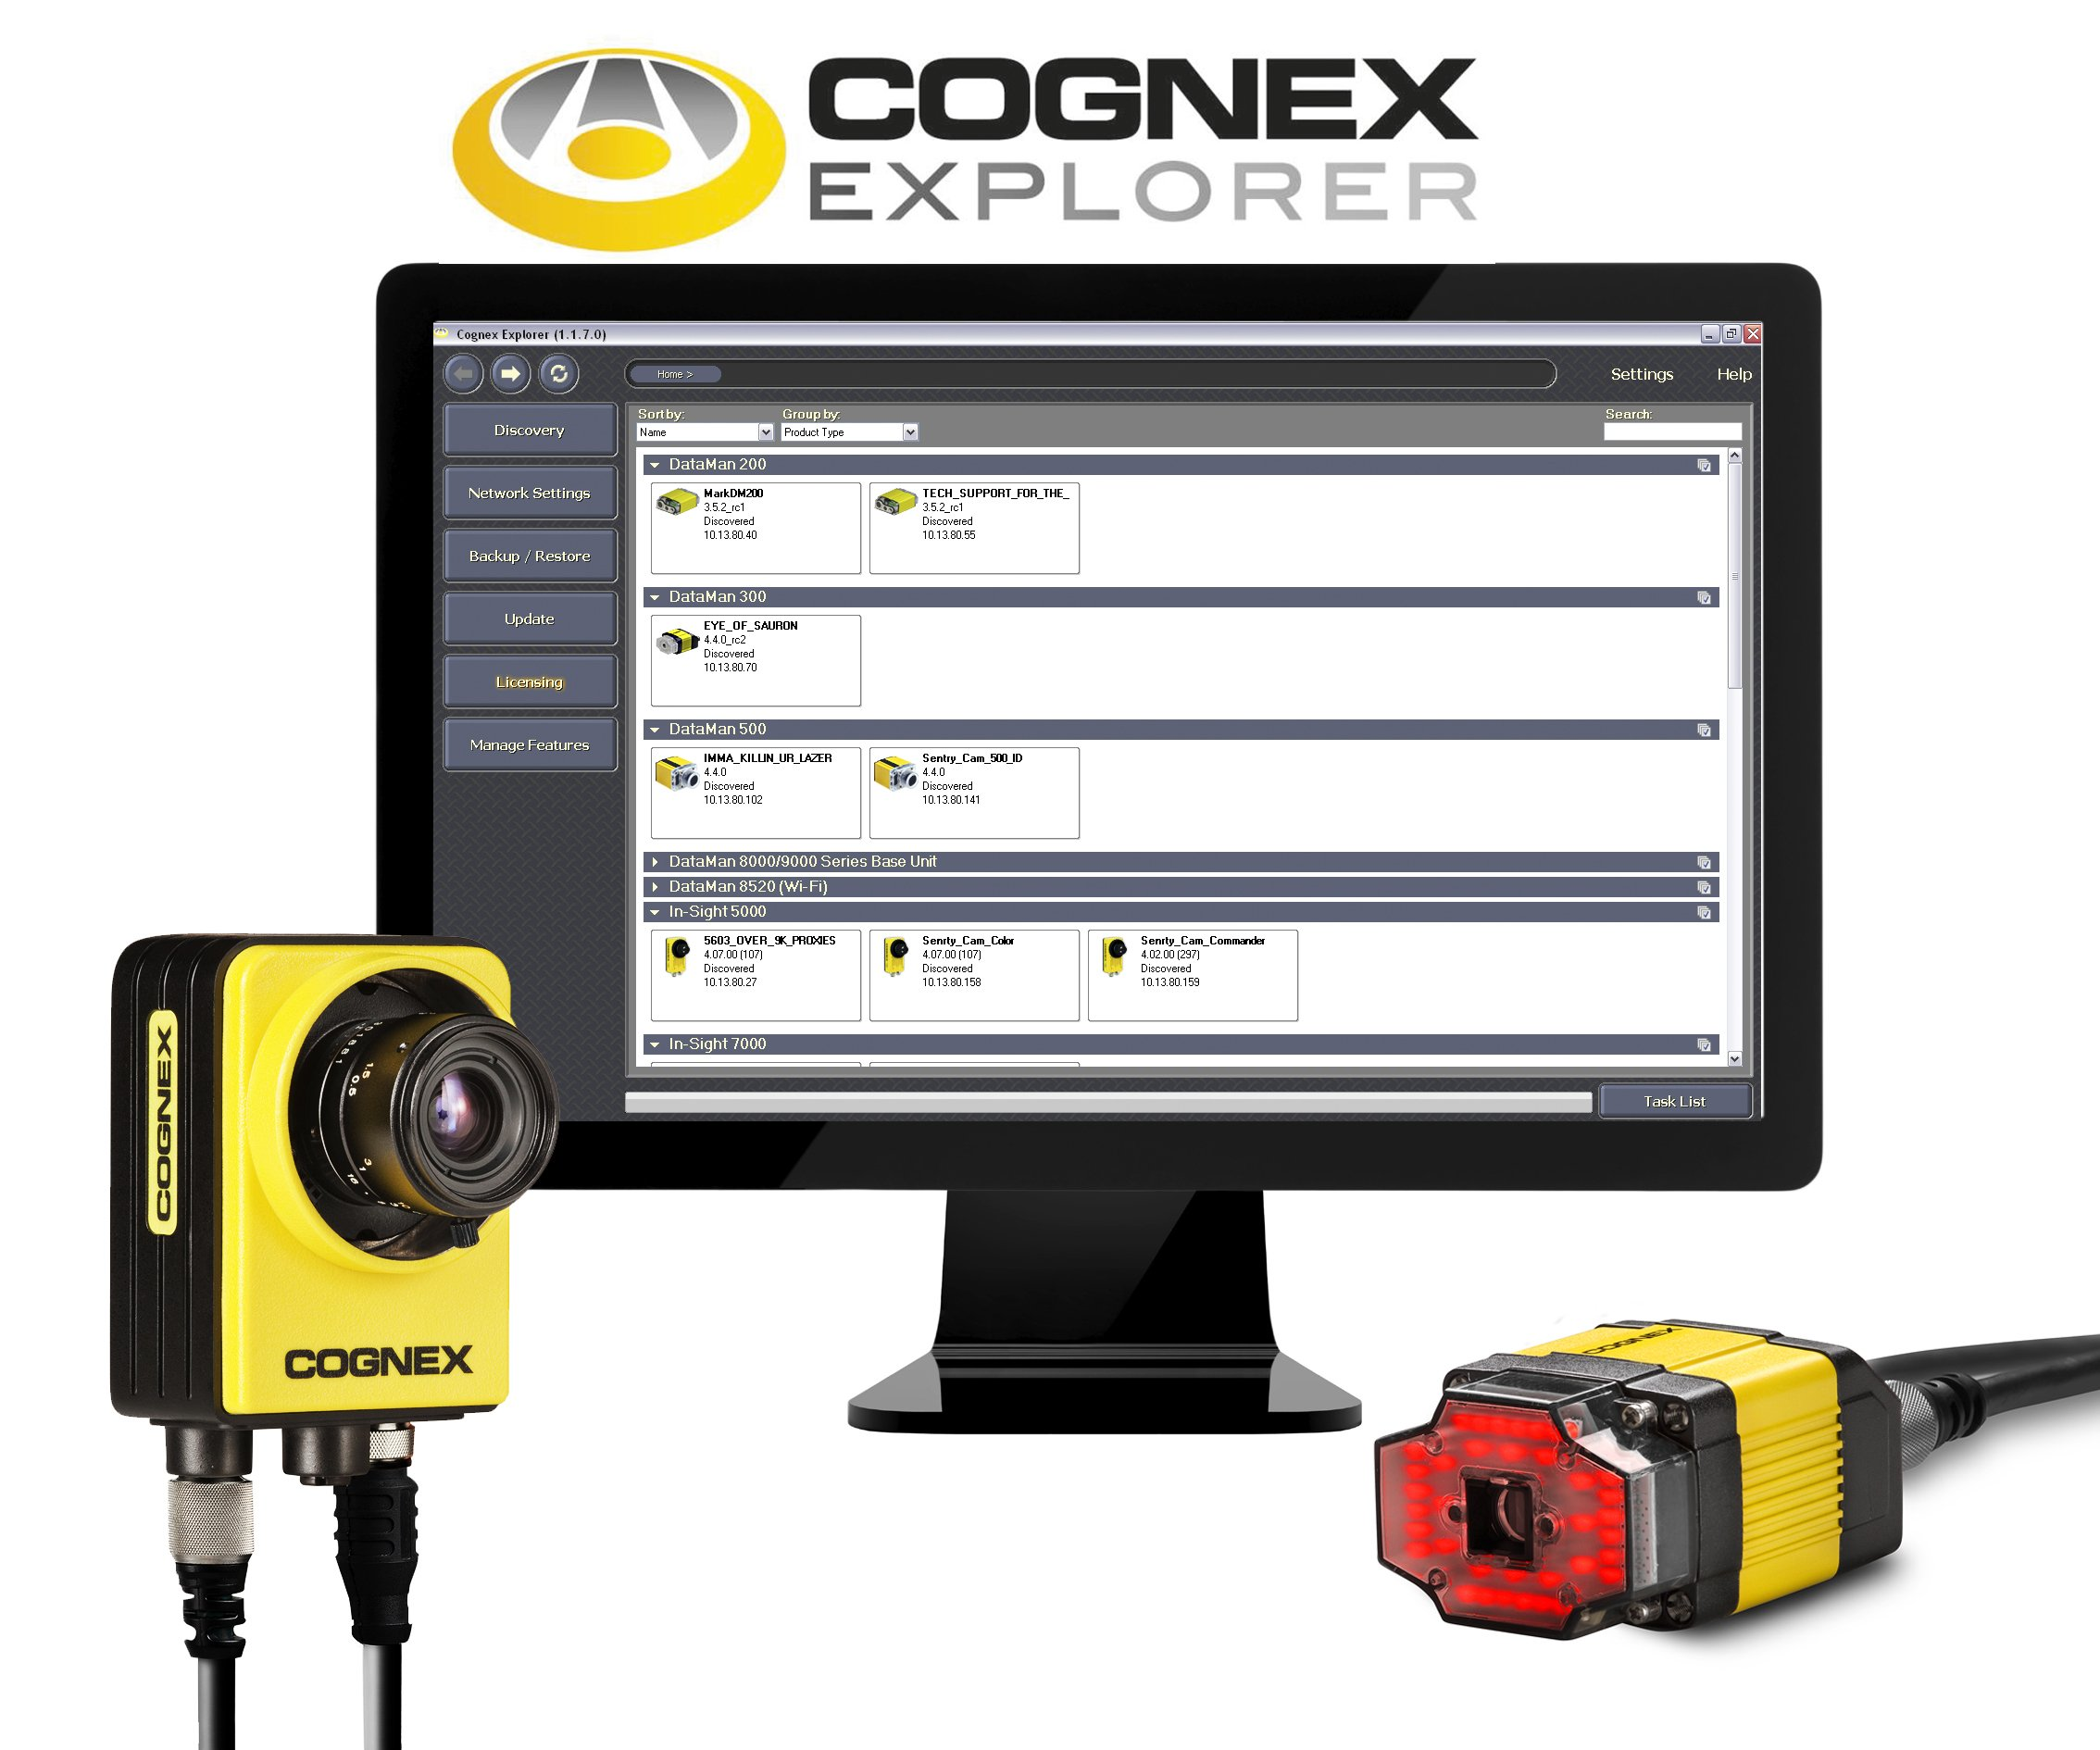 New Control Center For All Cognex Vision Systems And